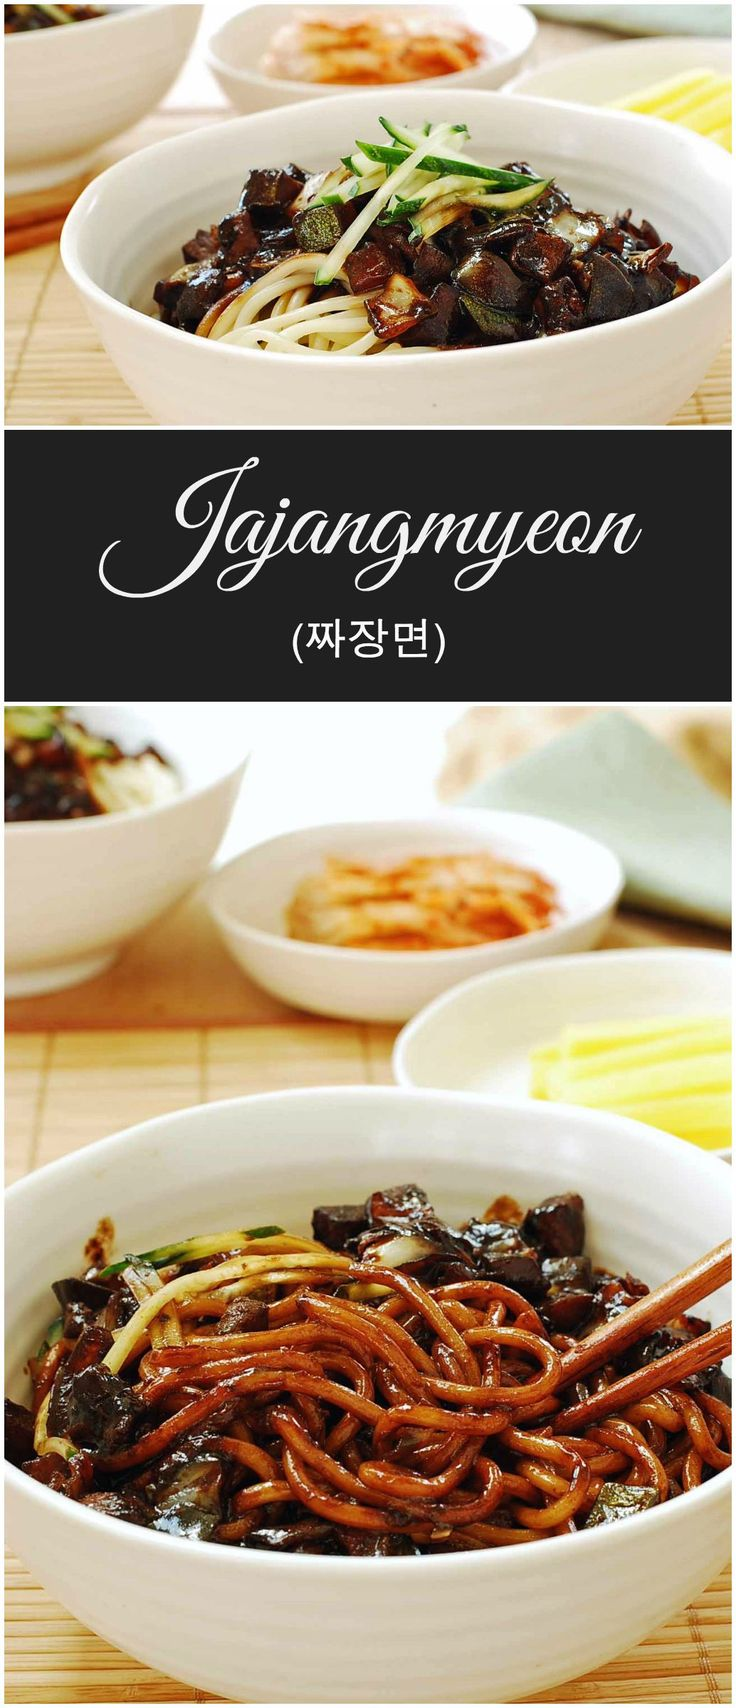 This sweet and savory noodle dish, jajangmyeon (or jjajangmyeon), is a popular Korean-Chinese noodle dish. It's a huge part of Korean food culture. In recent years, jajangmyeon has become a symbolic dish that single people eat with their friends on Black Day to commiserate with each other over black noodles. {Read|Find more} about {korean cuisine|korean food|korea food|south korean food} {clicking| - clic} link below: http://foodyoushouldtry.com/33-best-dishes-taste-korea/